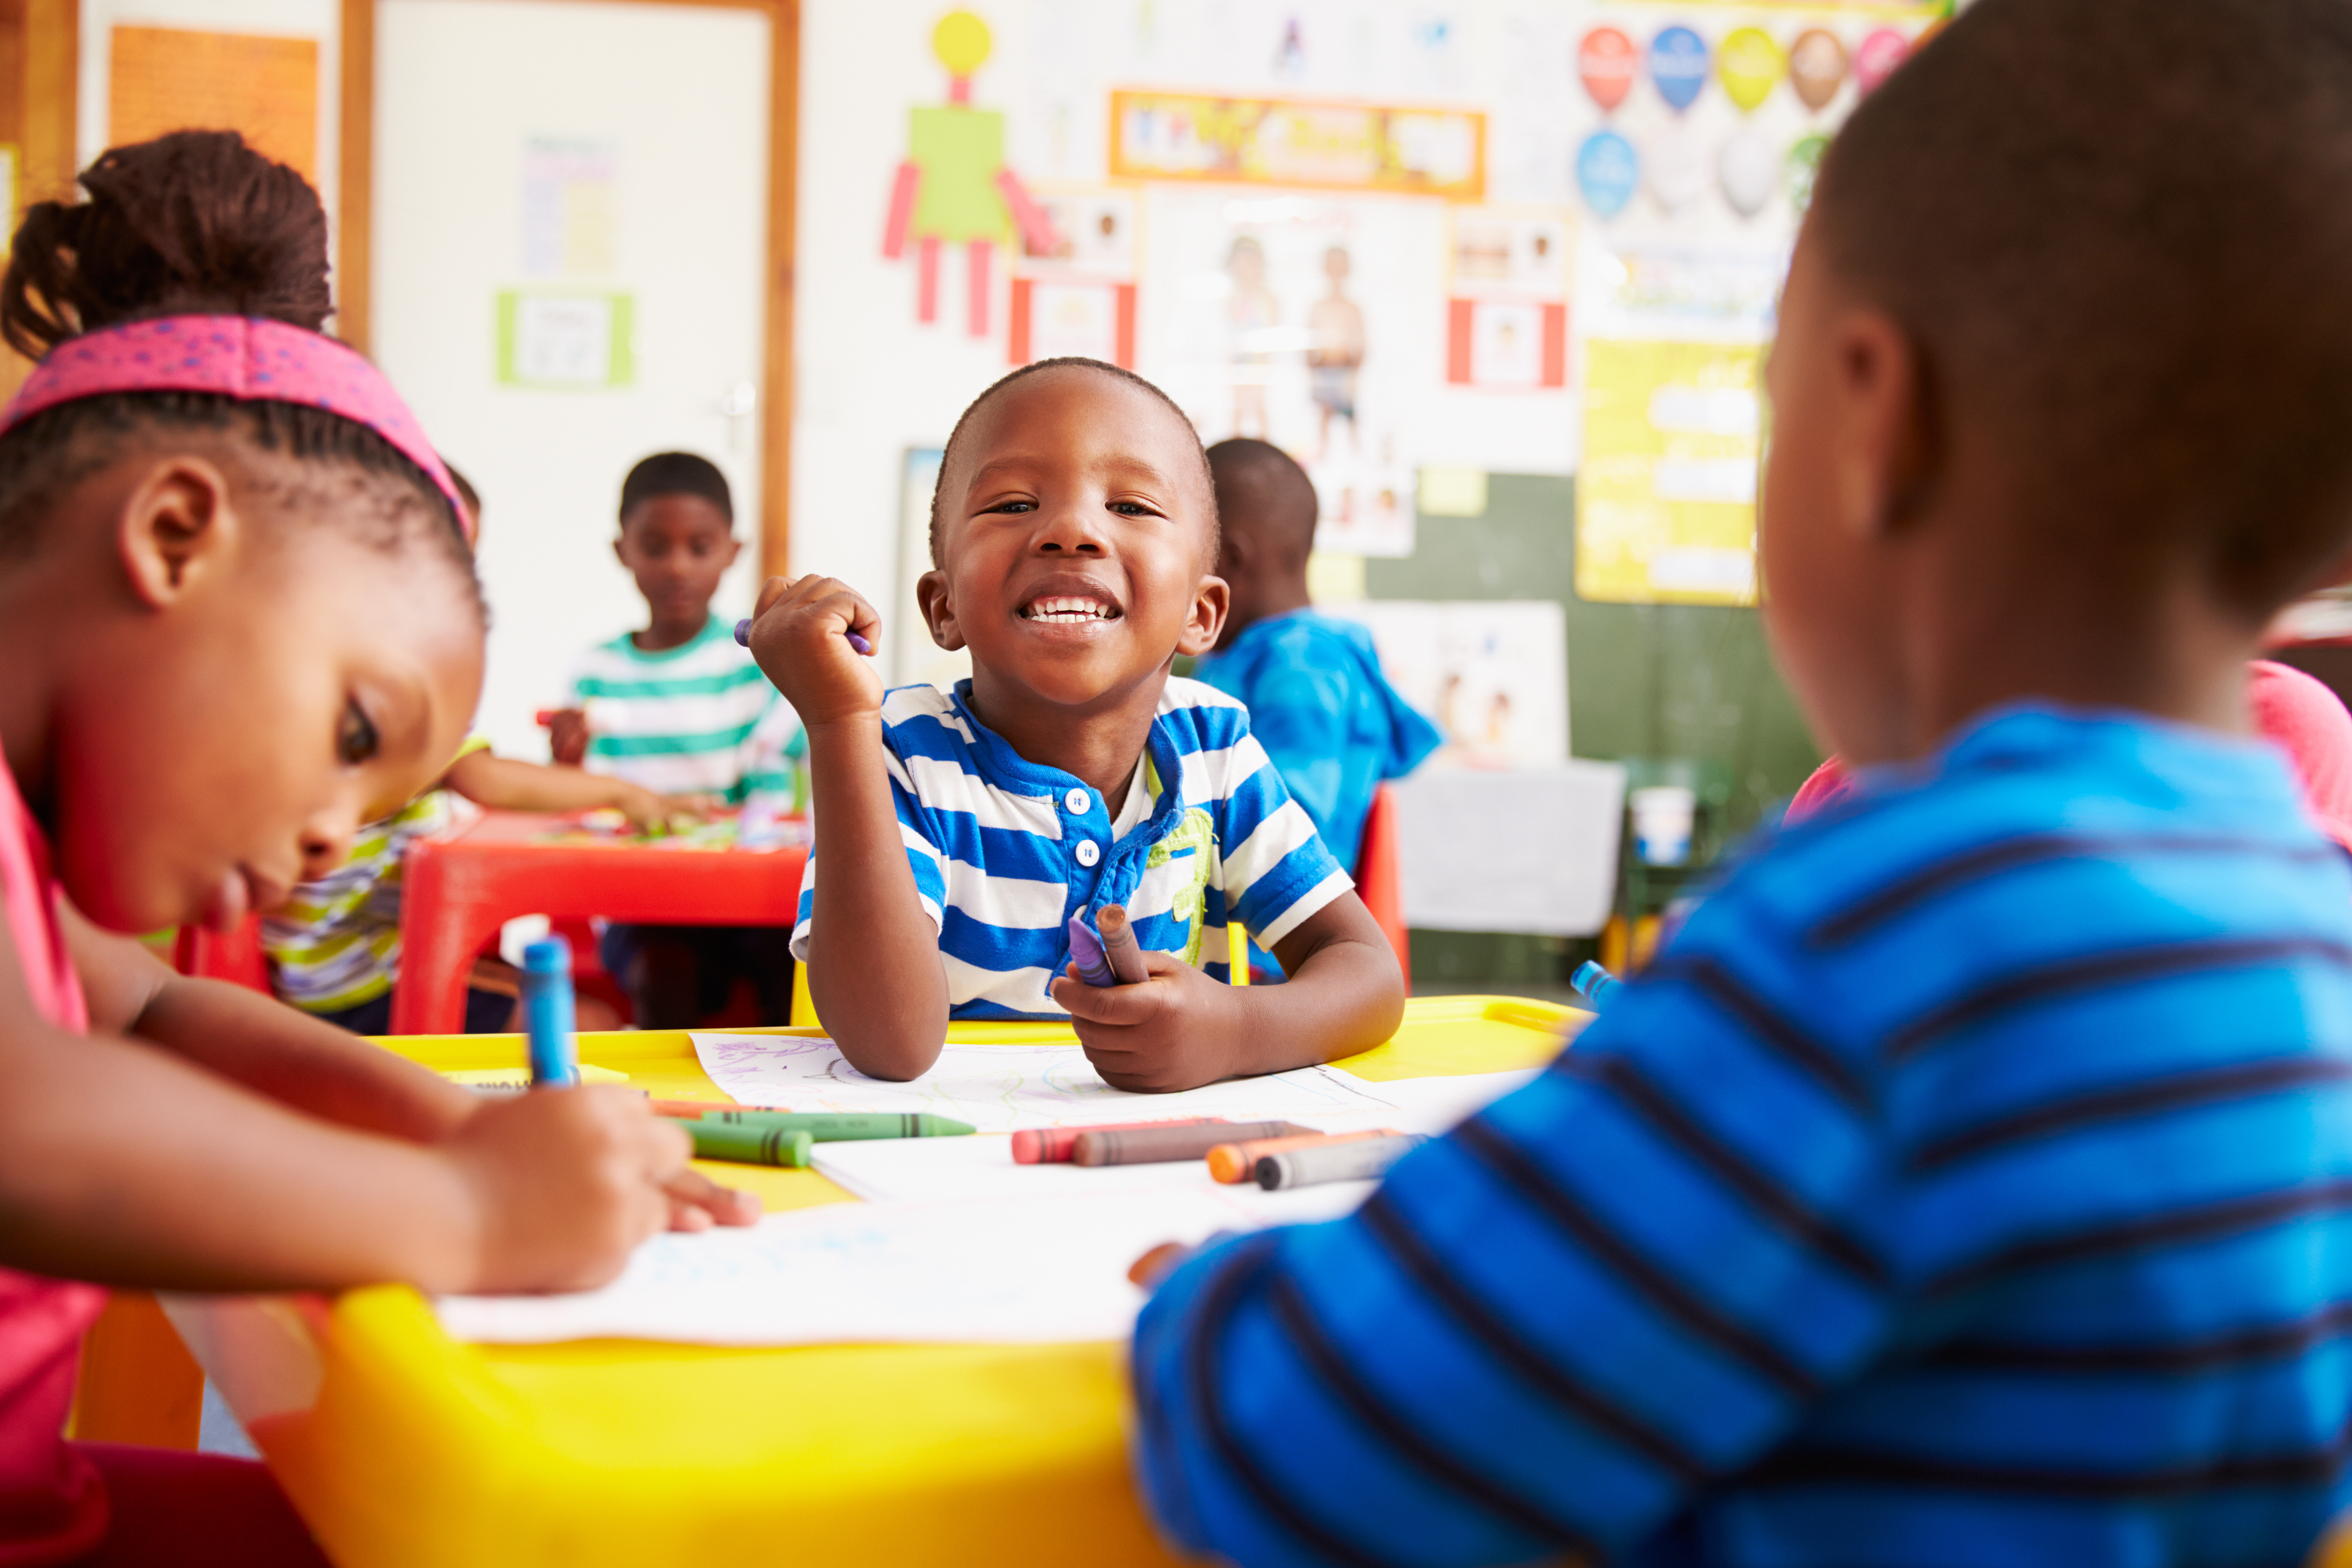 Do Tests Improve Learning Poor Families >> Early Childhood Education Yields Few Academic Benefits But Still